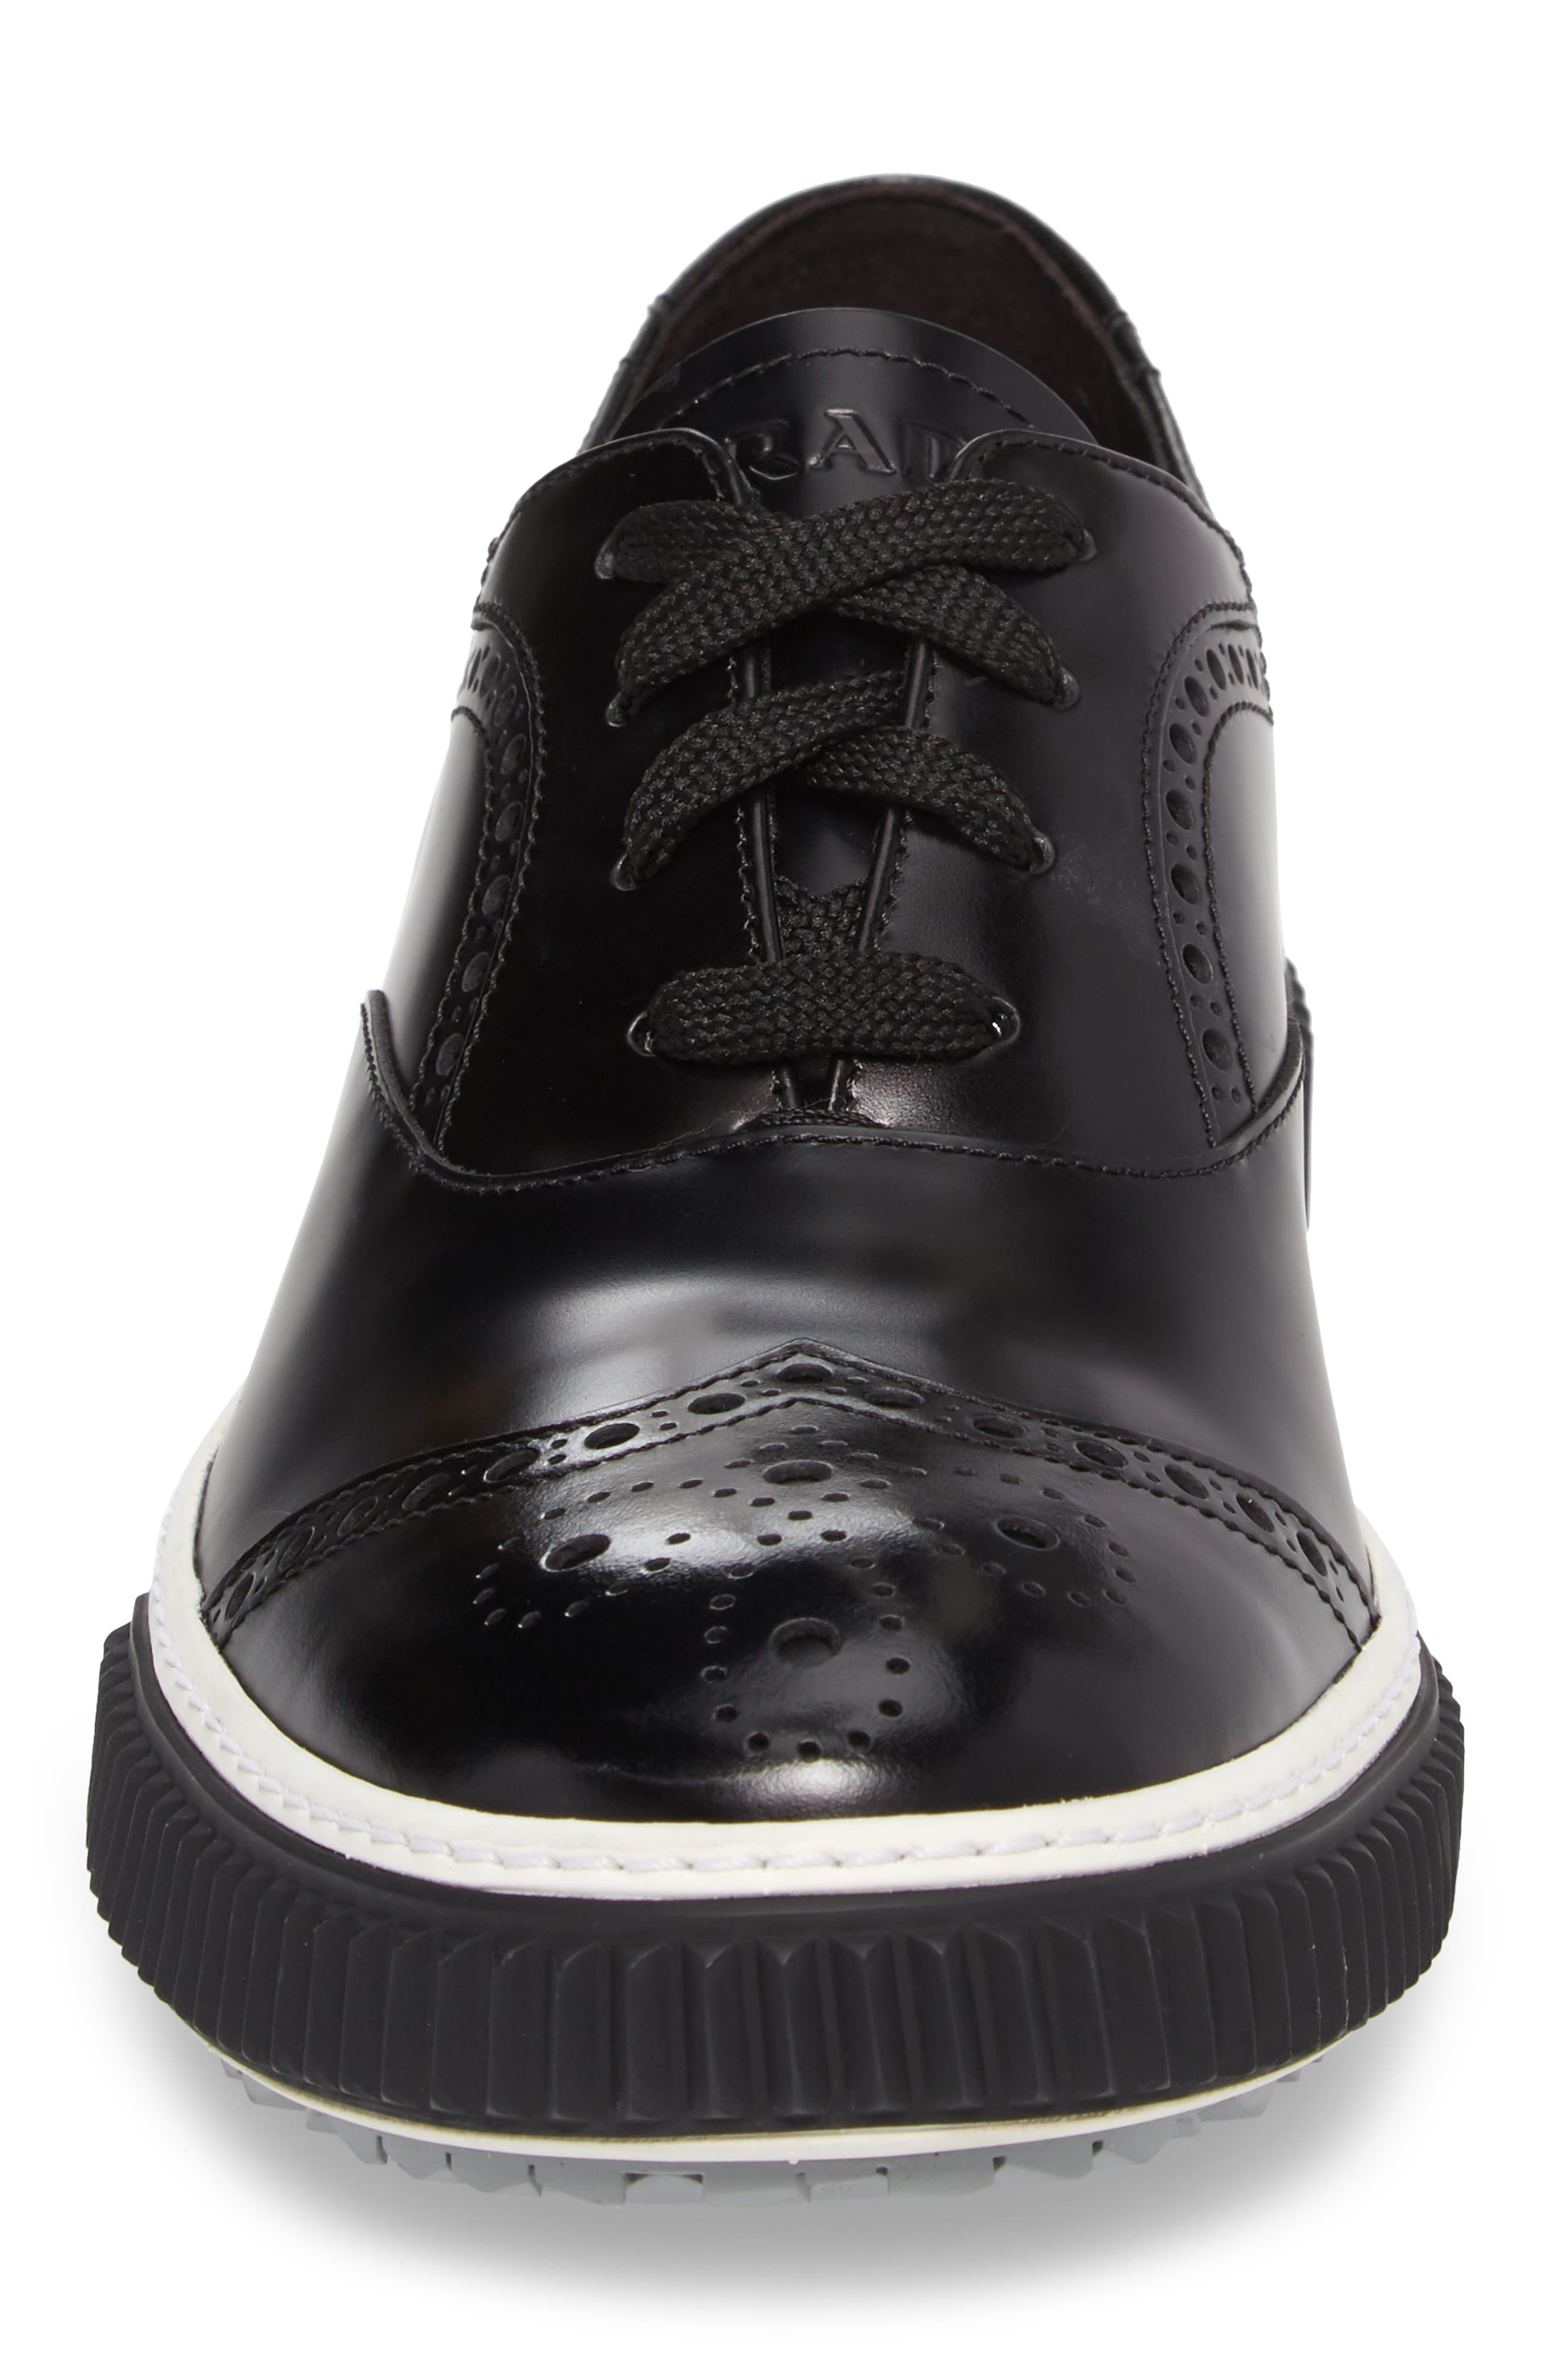 Linea Rossa Wingtip Sneaker,                             Alternate thumbnail 4, color,                             002